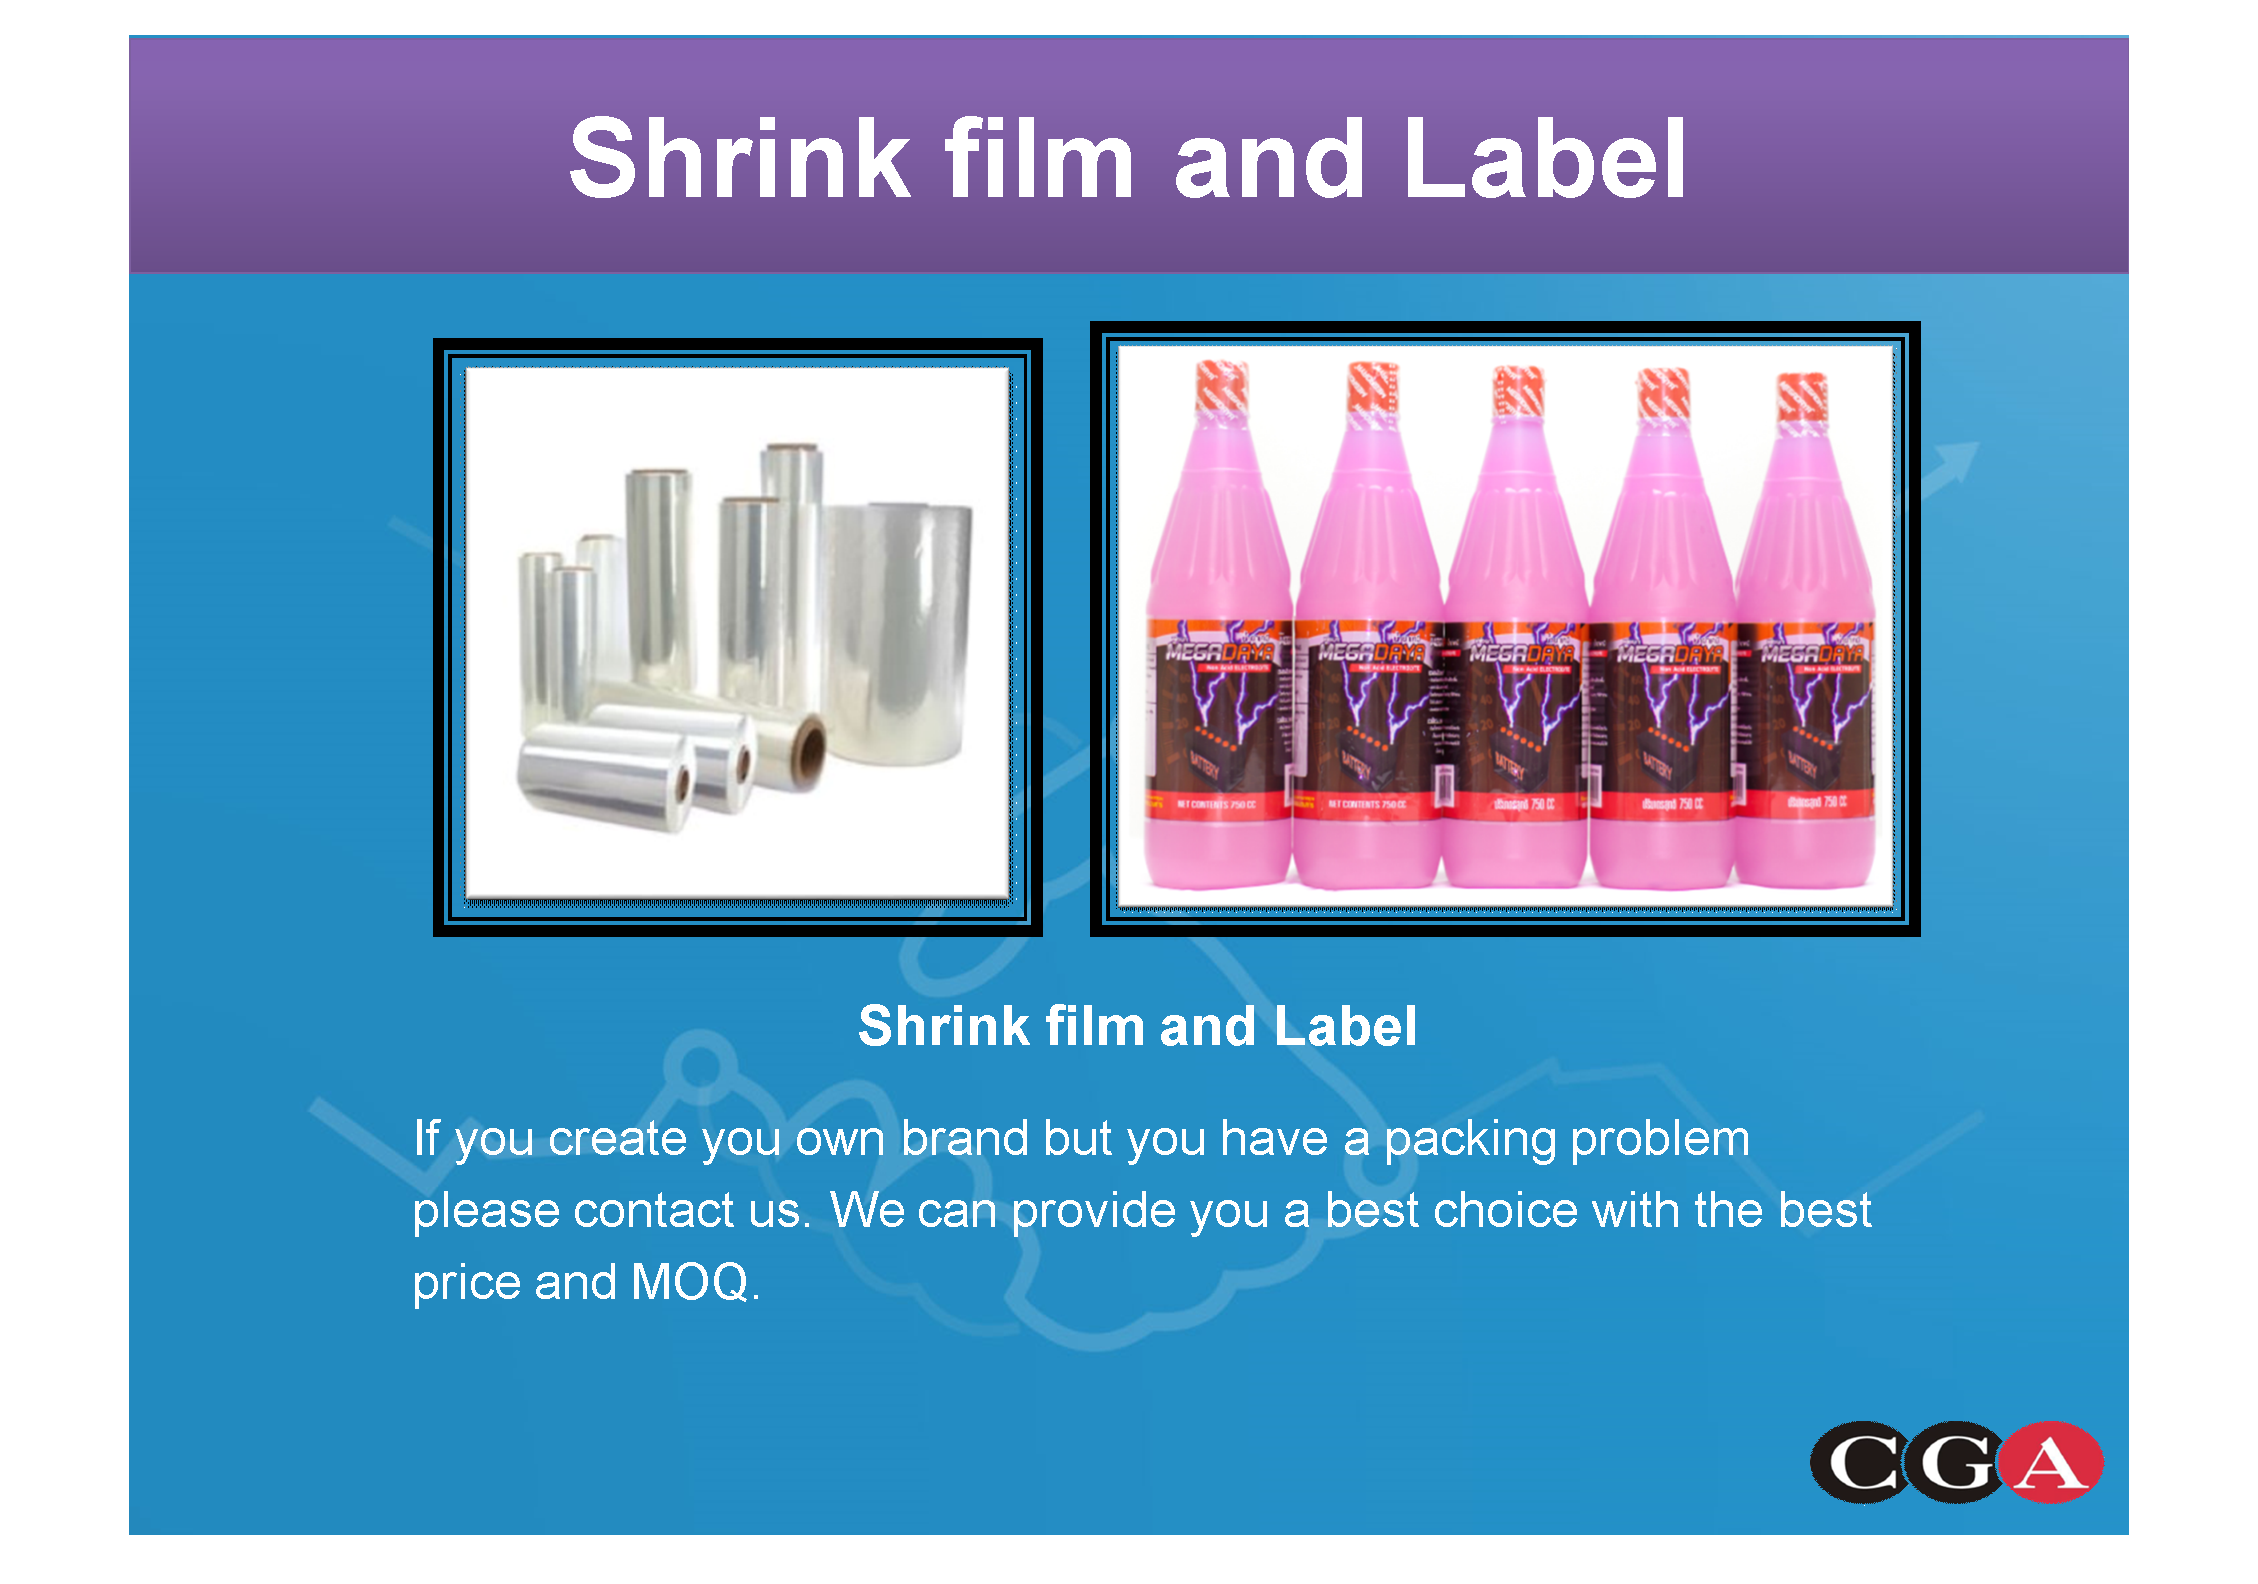 SHRINK FILM AND LABEL